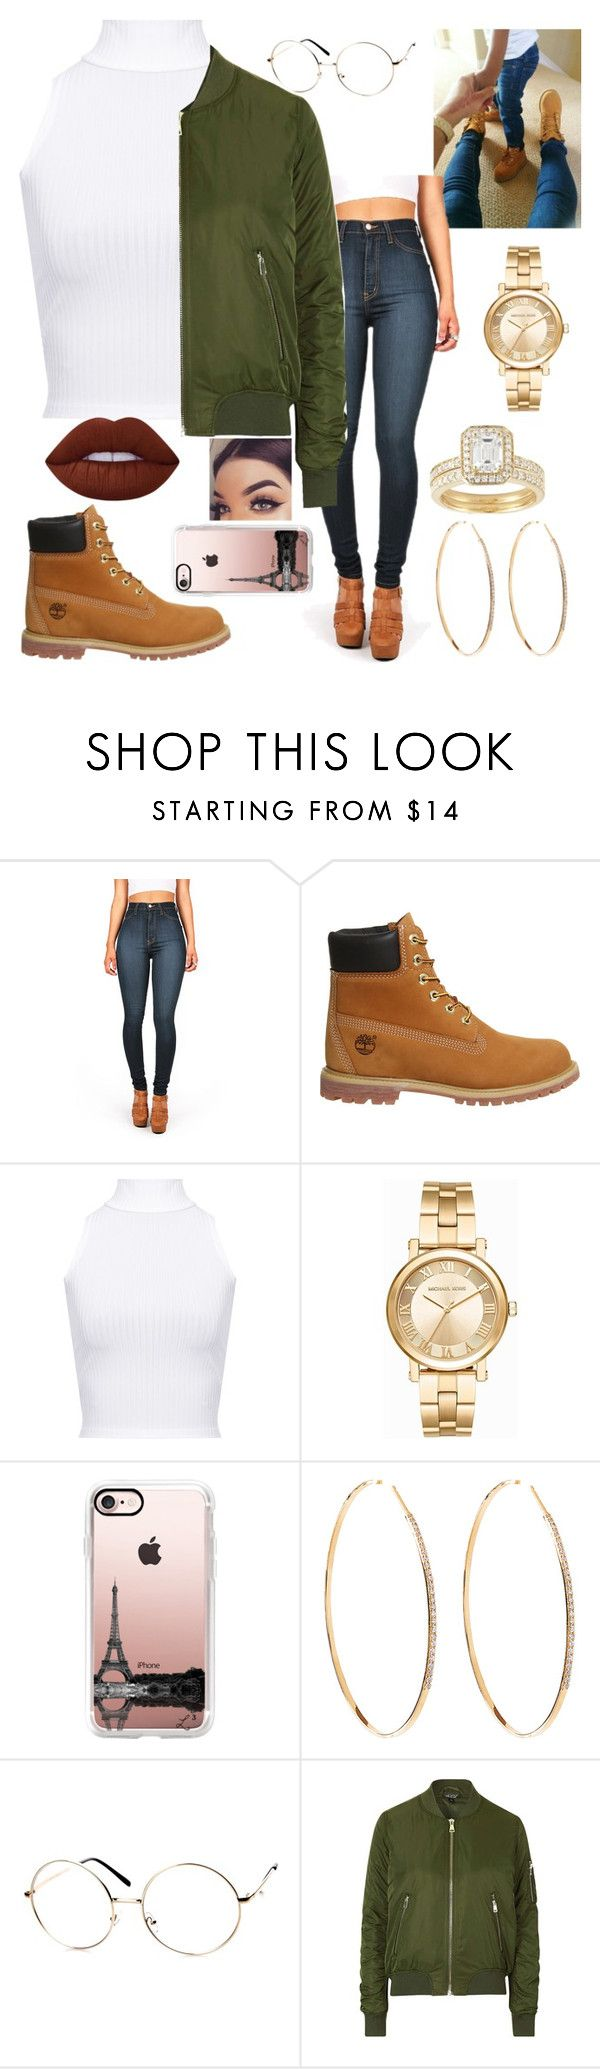 """""""Untitled #299"""" by official-zay-outfits ❤ liked on Polyvore featuring Vibrant, Timberland, WearAll, Michael Kors, Casetify, Lana, ZeroUV, Topshop and Lime Crime"""